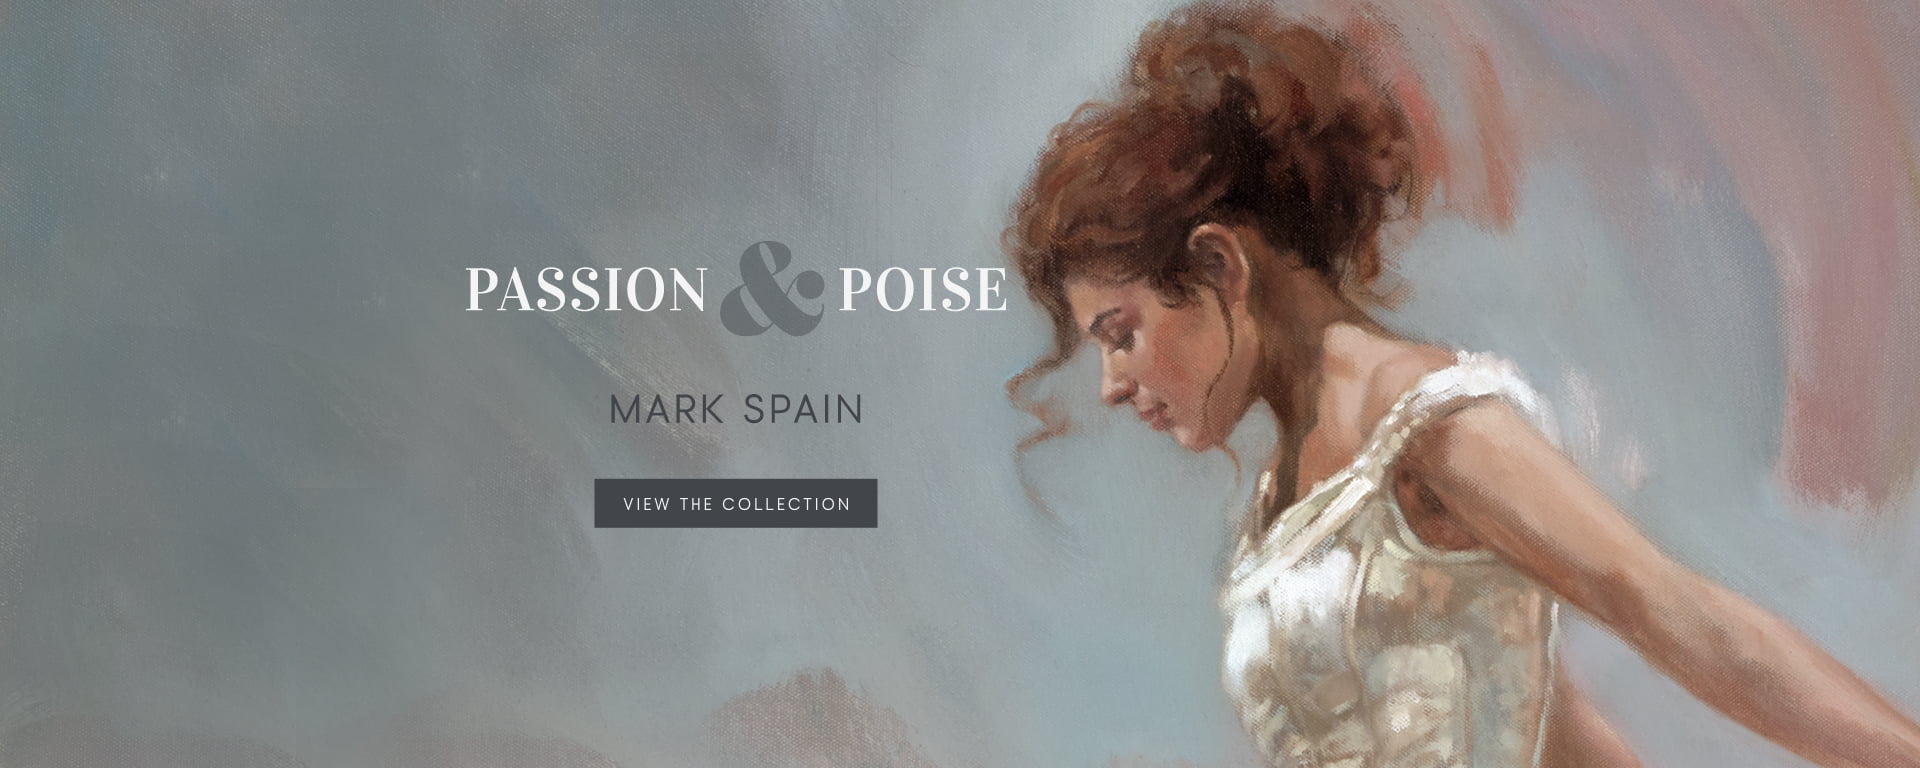 passion and poise by mark spain